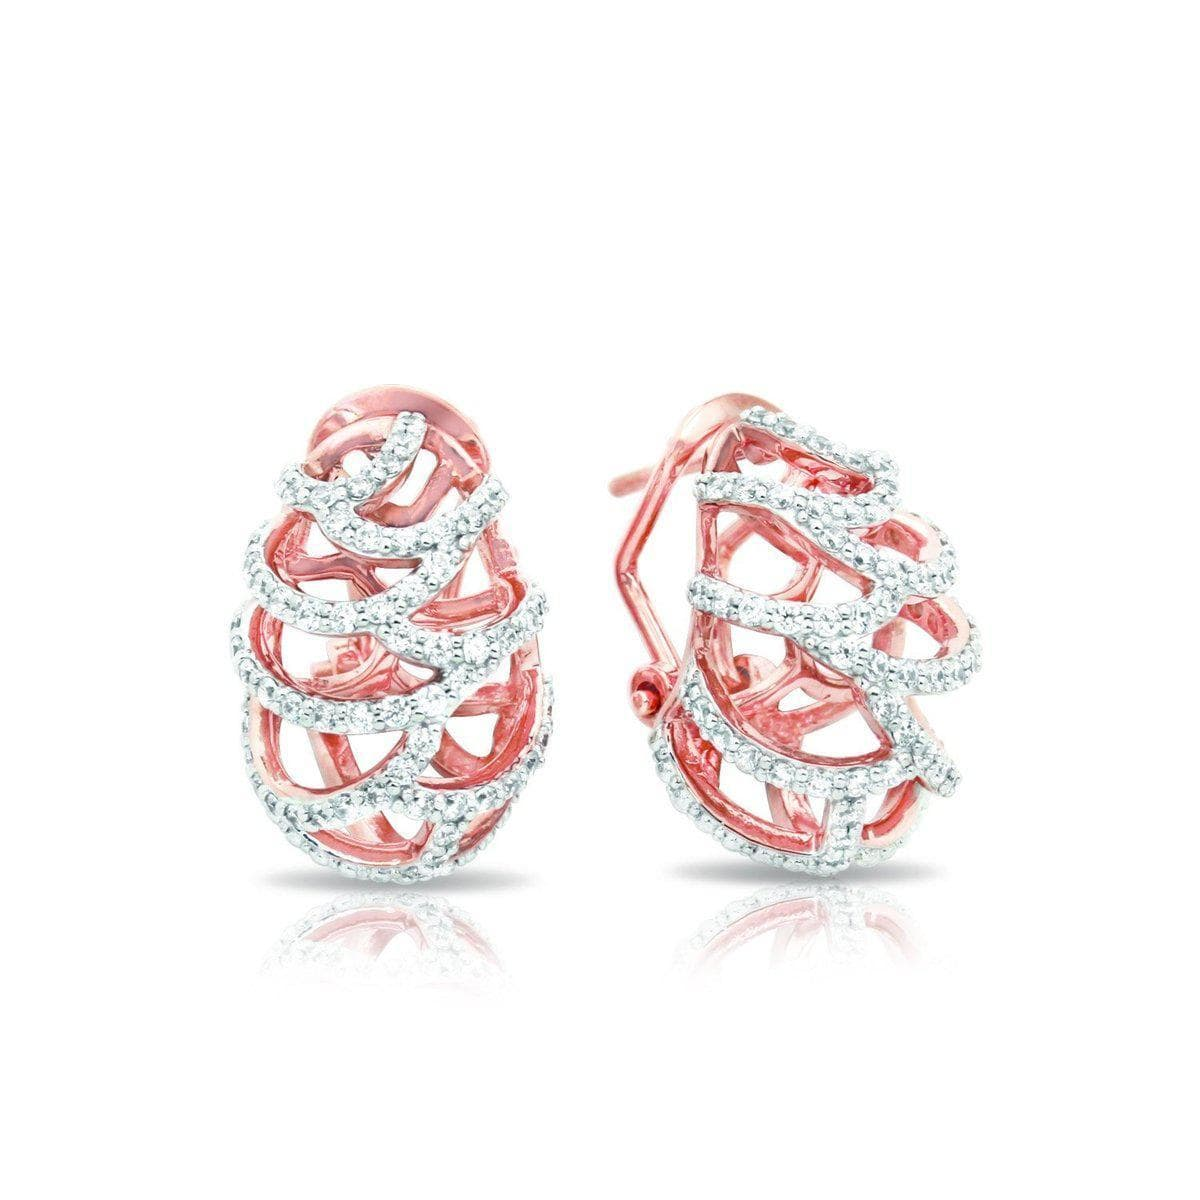 Monaco Rose Earrings-Belle Etoile-Renee Taylor Gallery